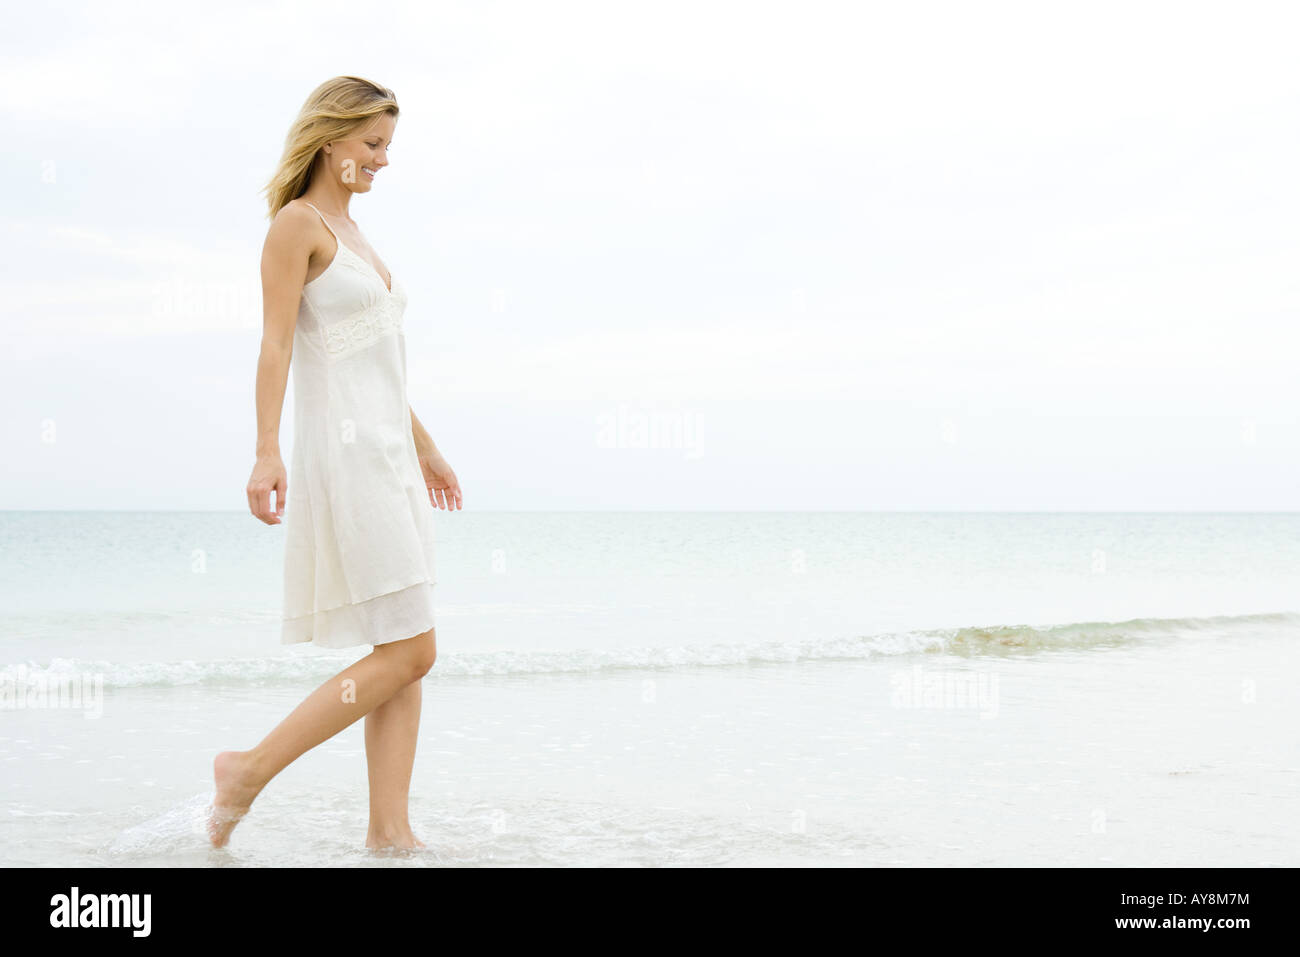 Young woman in sundress walking in surf at beach, smiling, full length Stock Photo